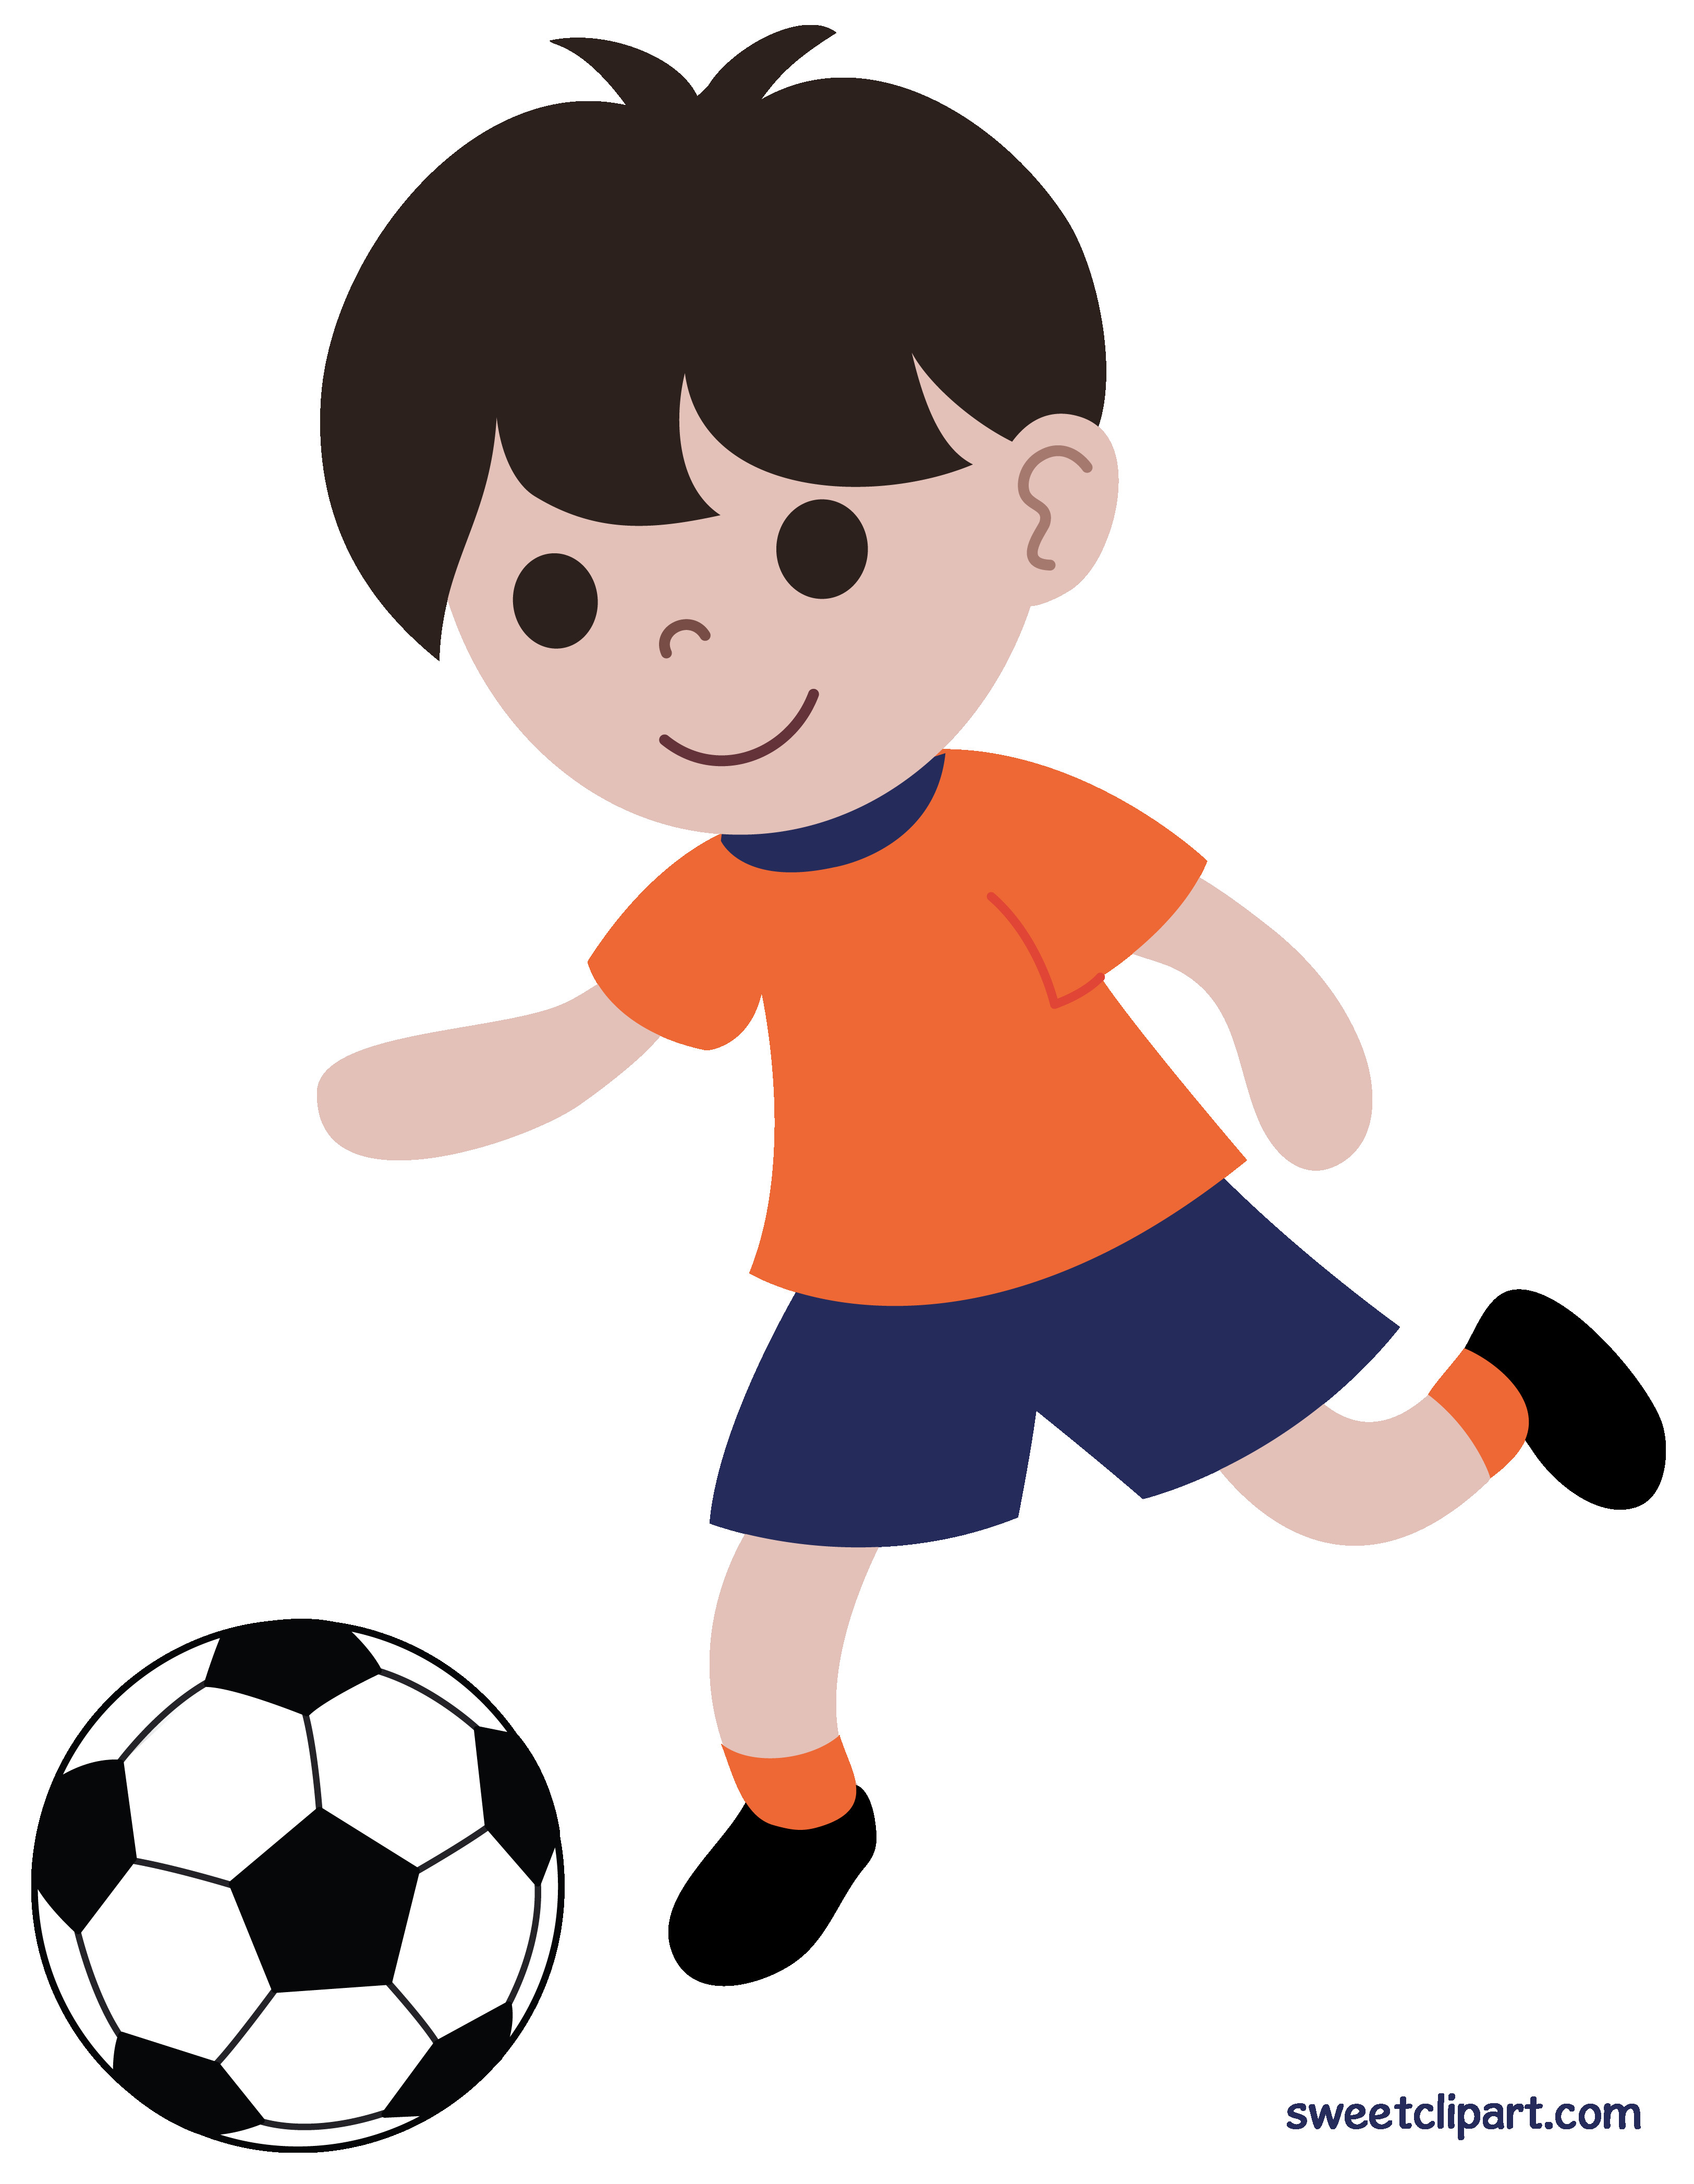 Football Player Clipart at GetDrawings.com.